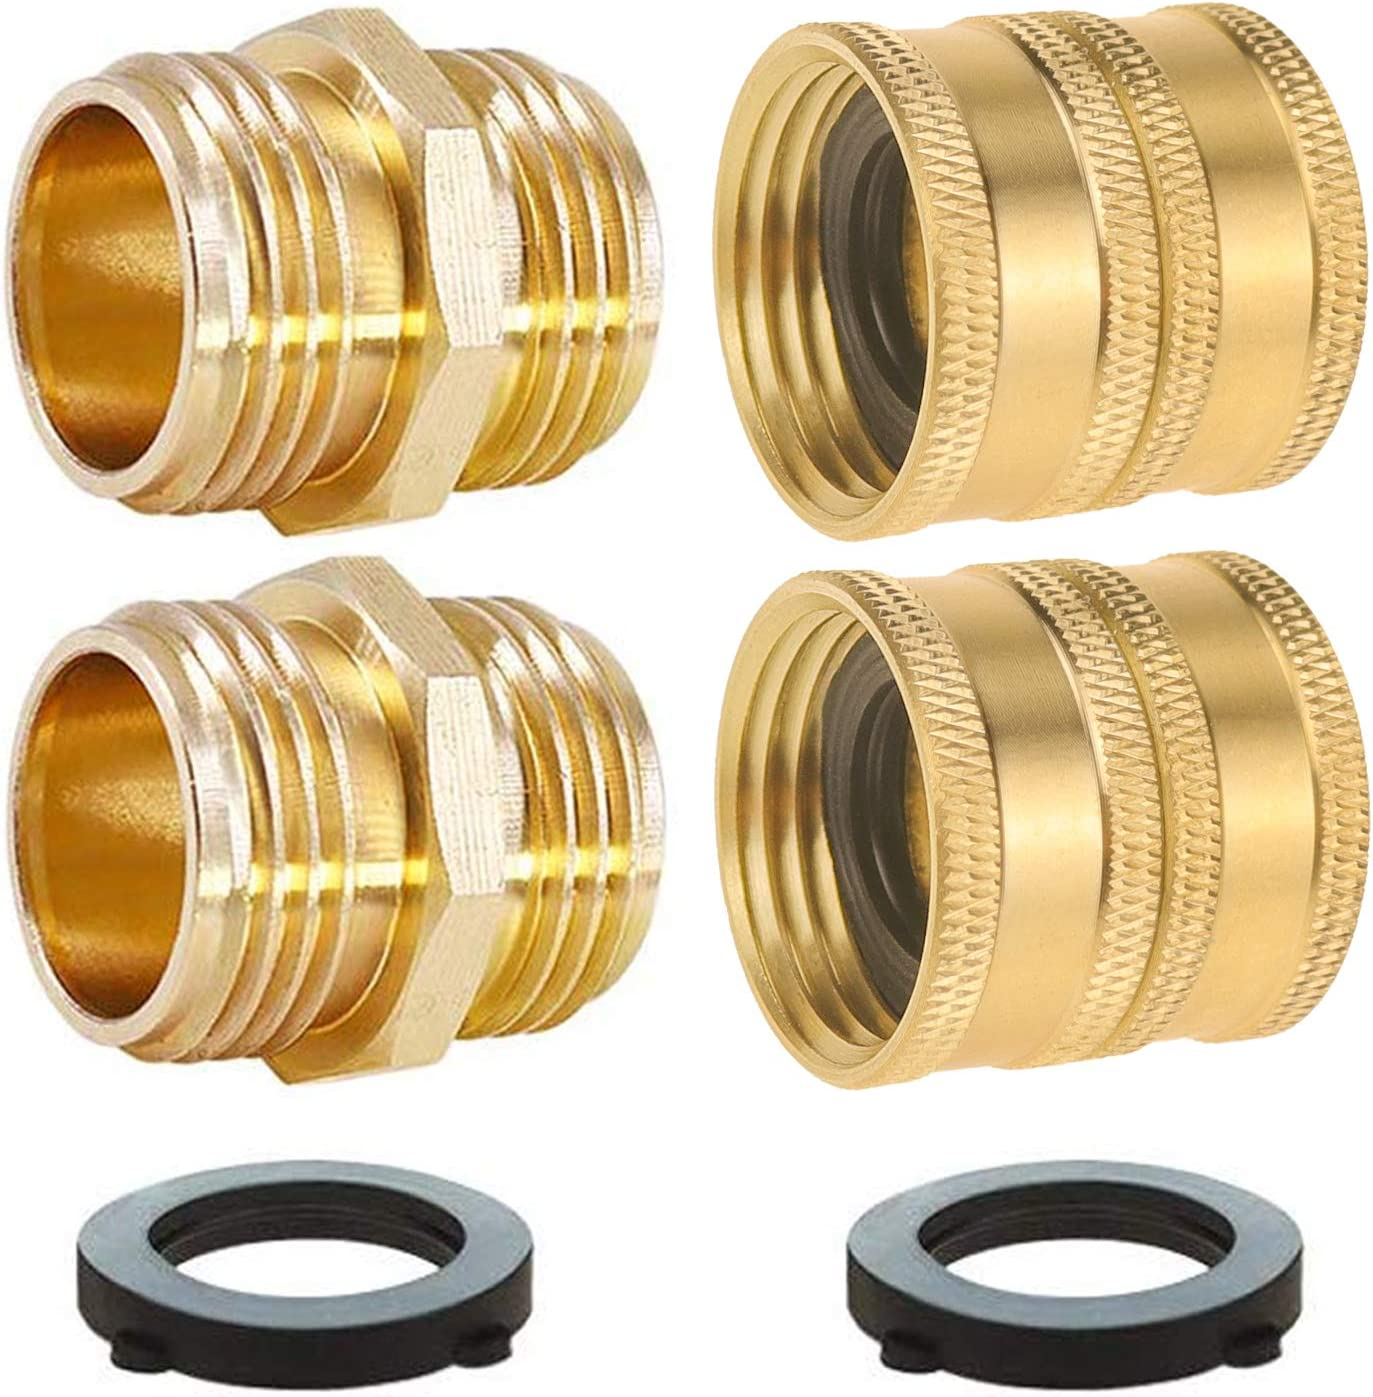 SANCEON Garden Hose Connector Adapter, 4-Pack 3/4'' GHT Brass Garden Hose Double Male and Female End Connector Fitting, Male to Male, Female to Female with Extra 4 Washers(2 Female + 2 Male)